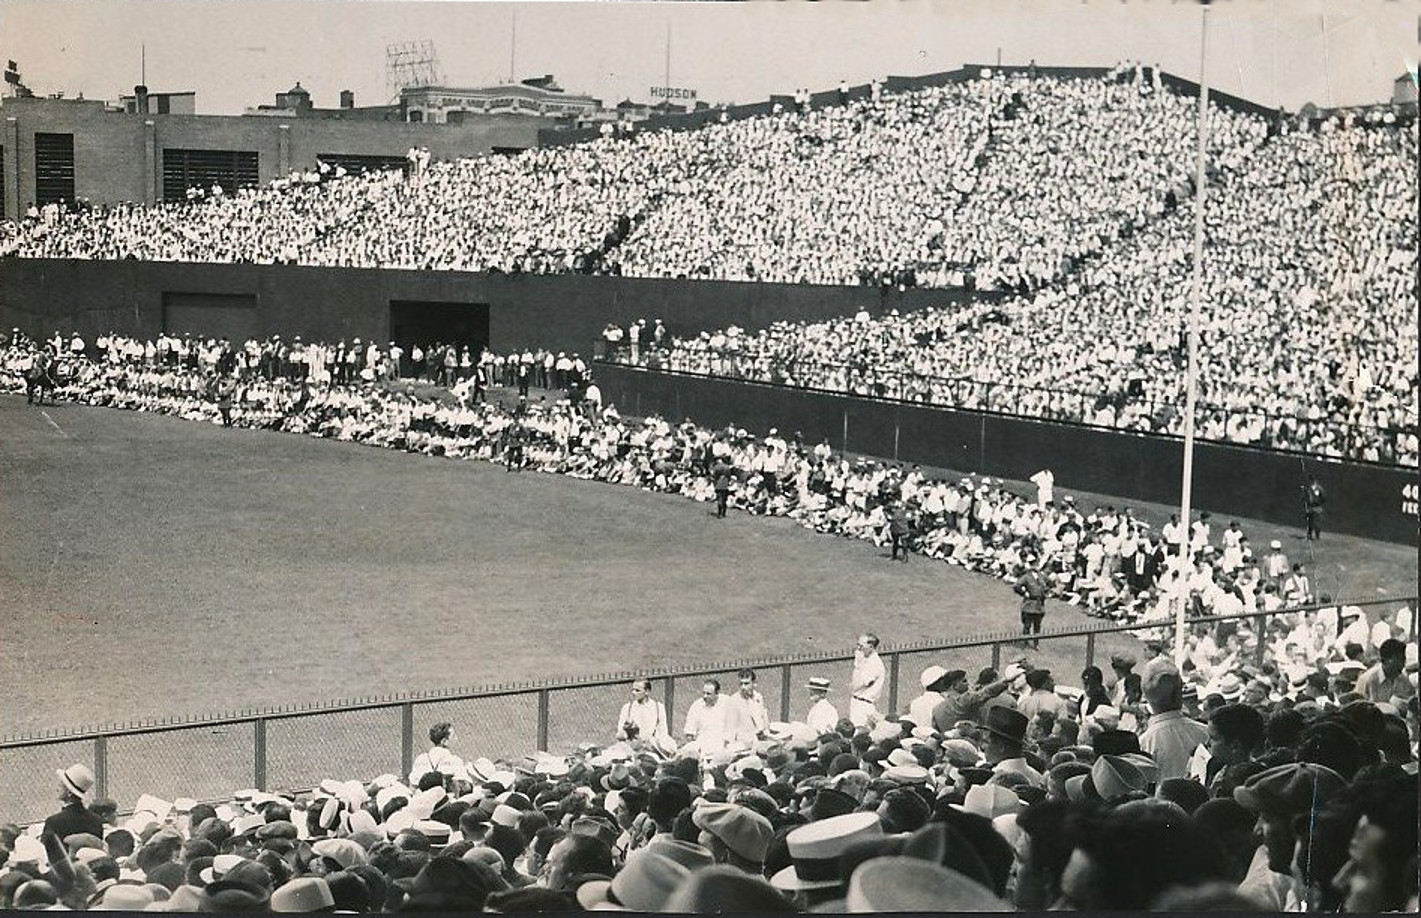 Boston's New Fenway Park Packs In 45,400 Fans -1934